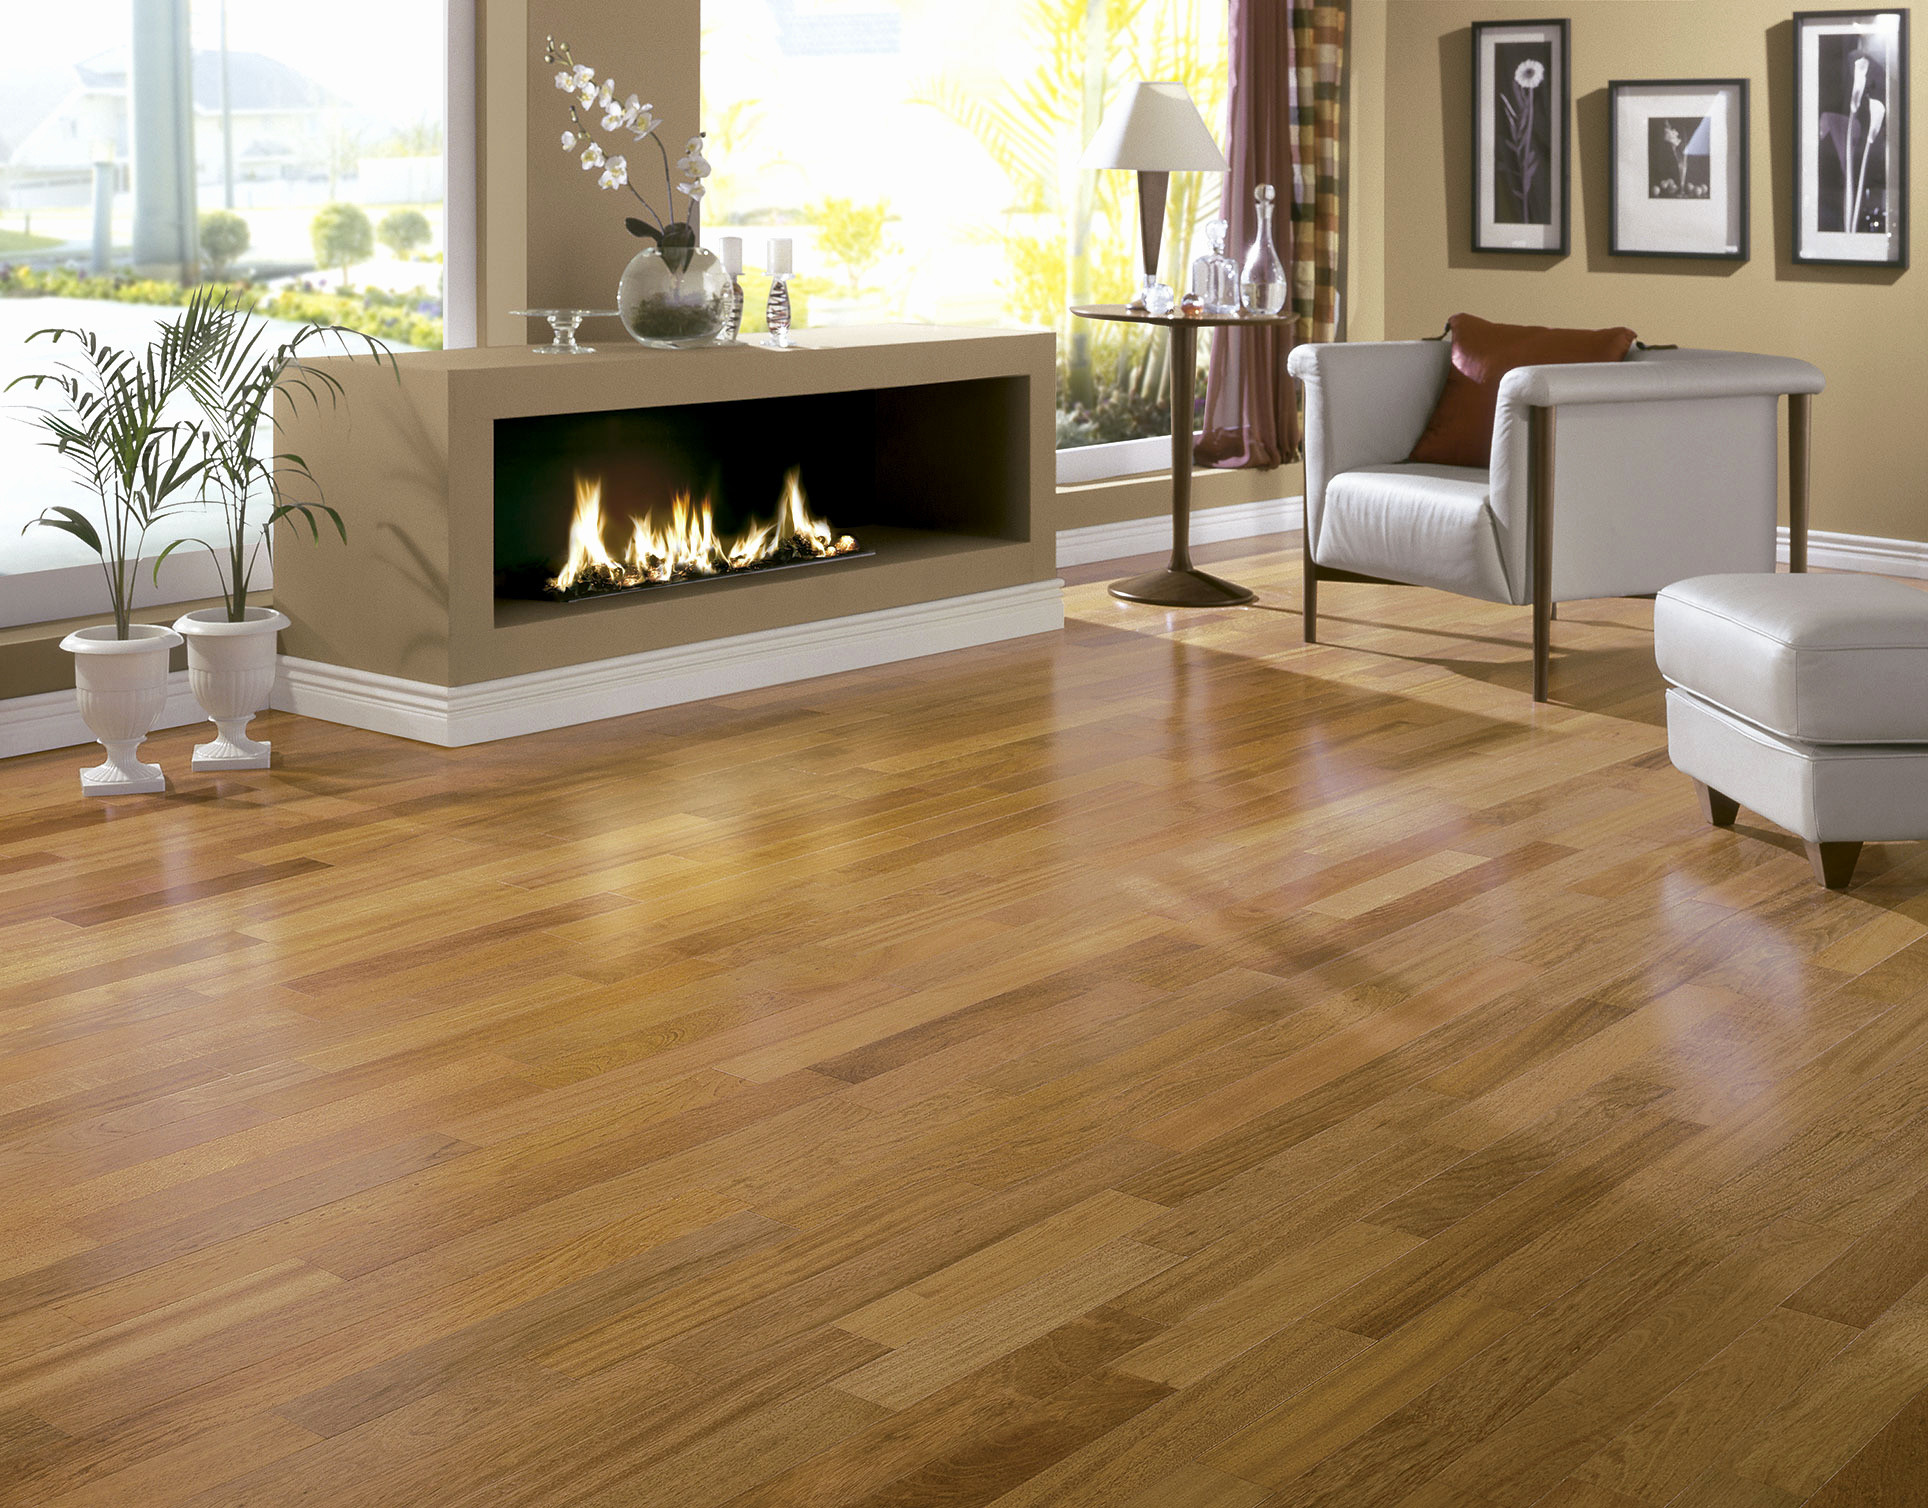 hardwood floor refinishing calgary of wlcu page 8 best home design ideas intended for 5 hardwood flooring best of engaging discount hardwood flooring 5 where to buy inspirational 0d